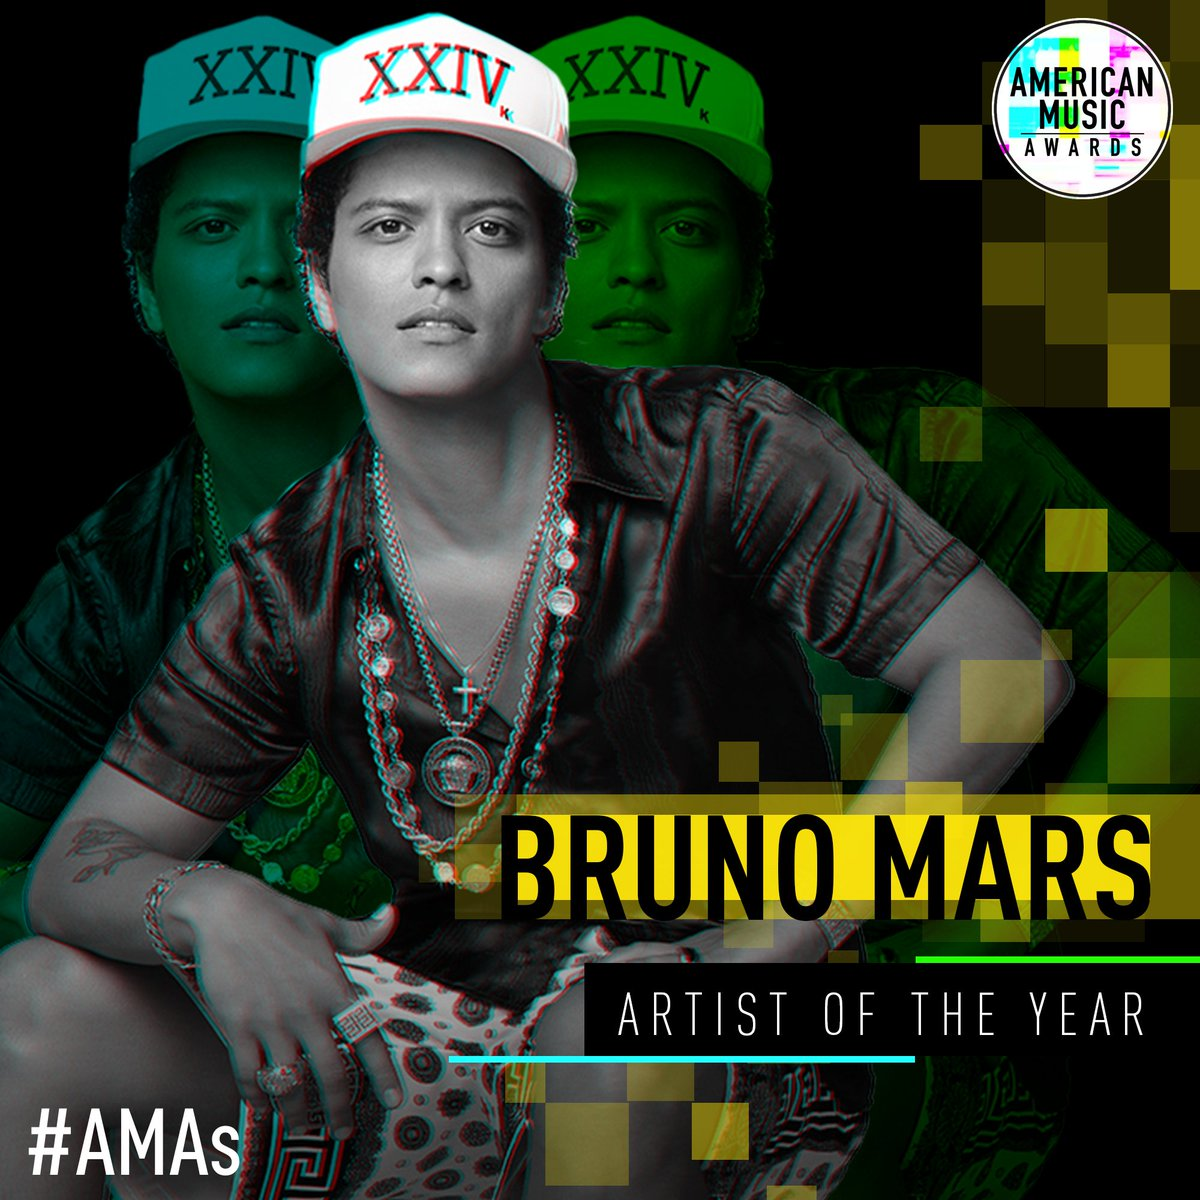 RT @AMAs: Drumroll please.... 🥁 🥁 🥁  Your #AMAs Artist of the Year is @BrunoMars ! Congratulations! https://t.co/D1jomdSeEO